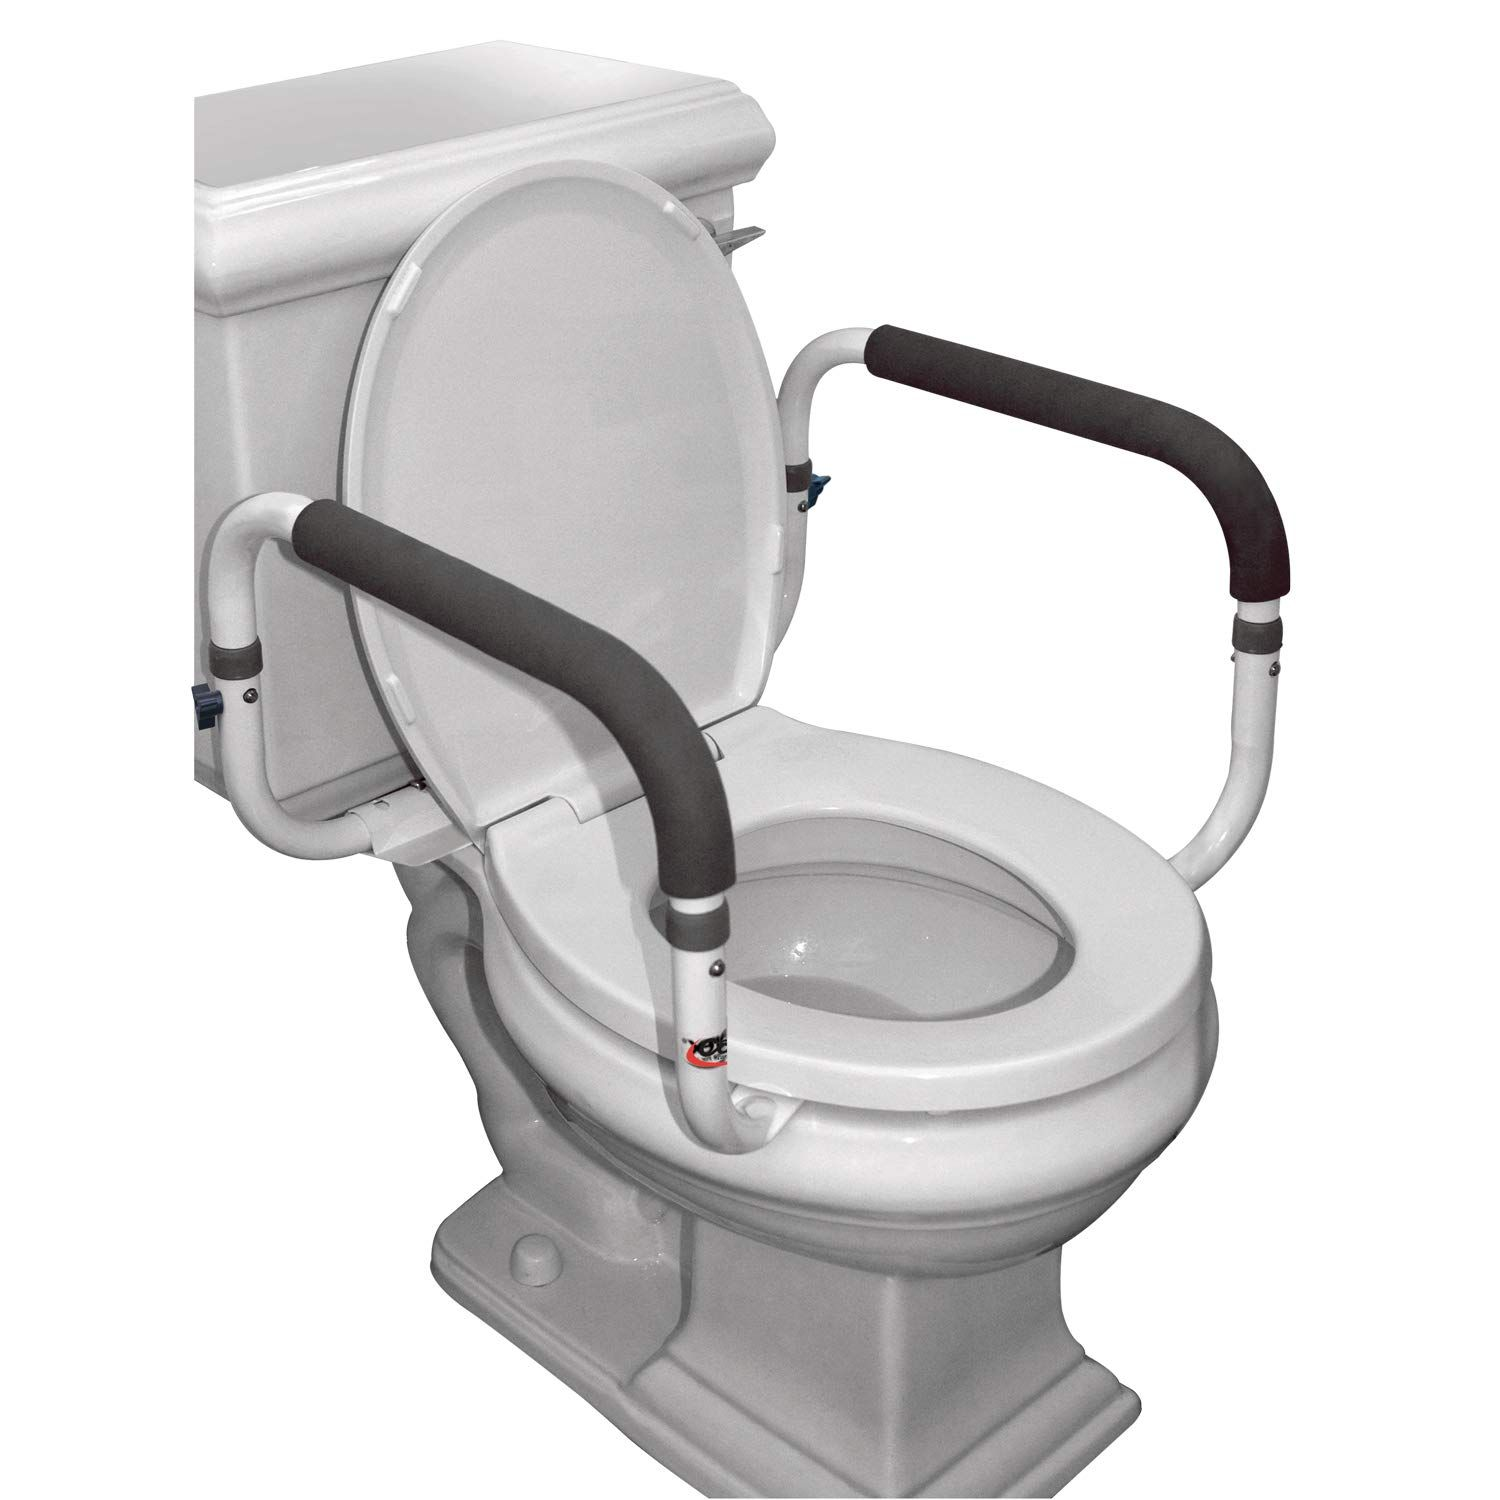 Carex Toilet Support Rail with Height Adjustable Legs and